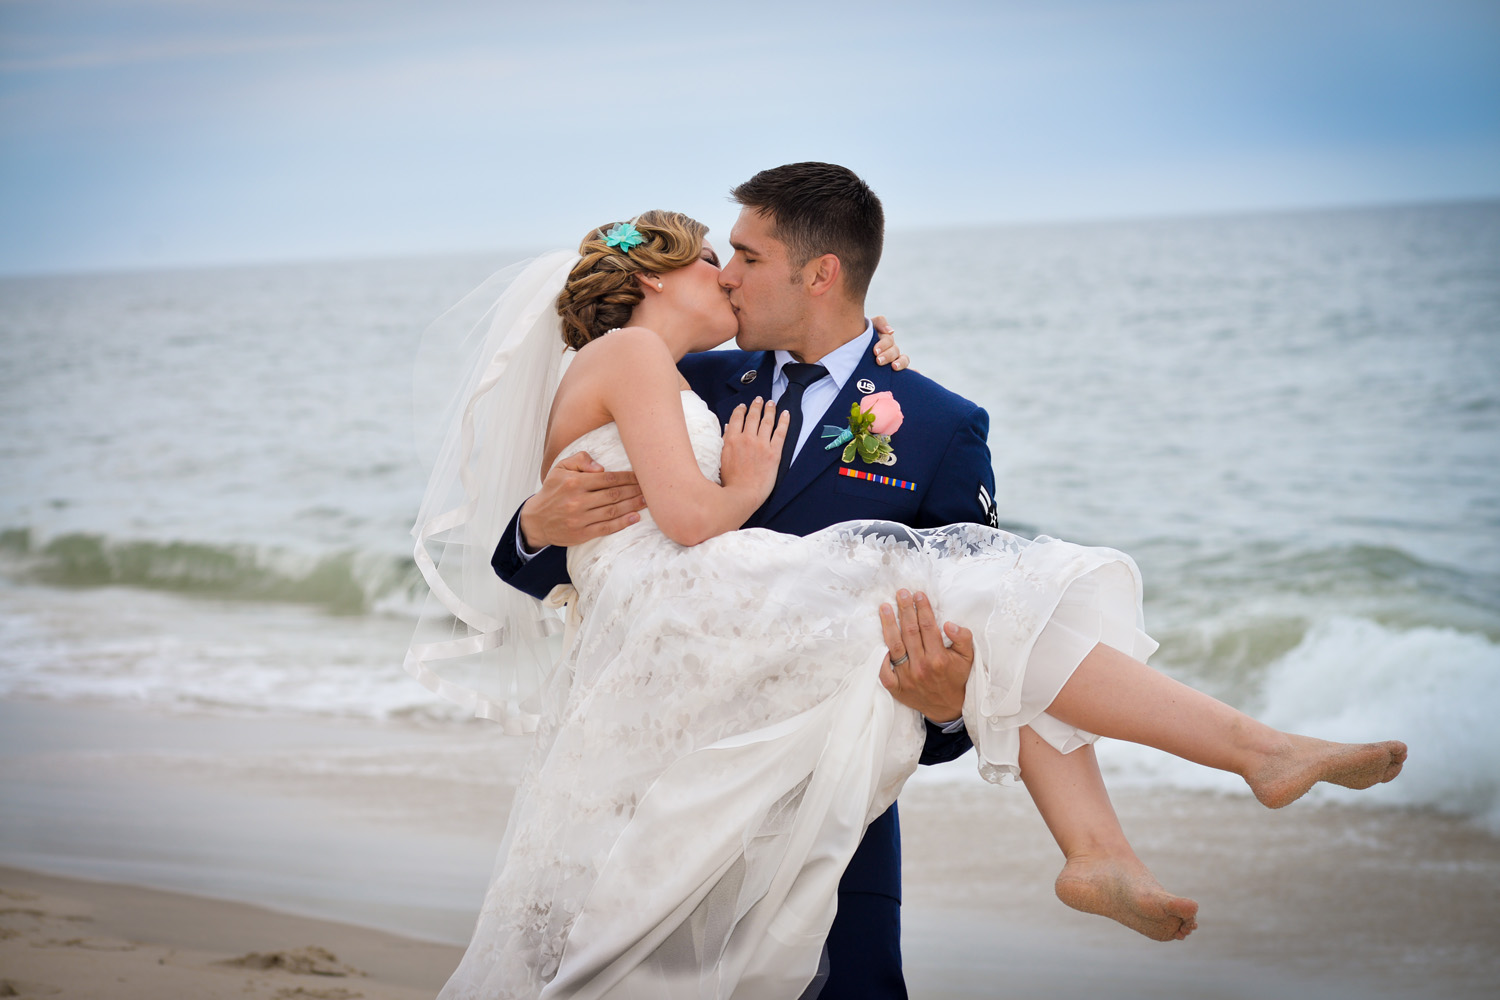 Wedding Day embrace on the beach / Meyer Photography